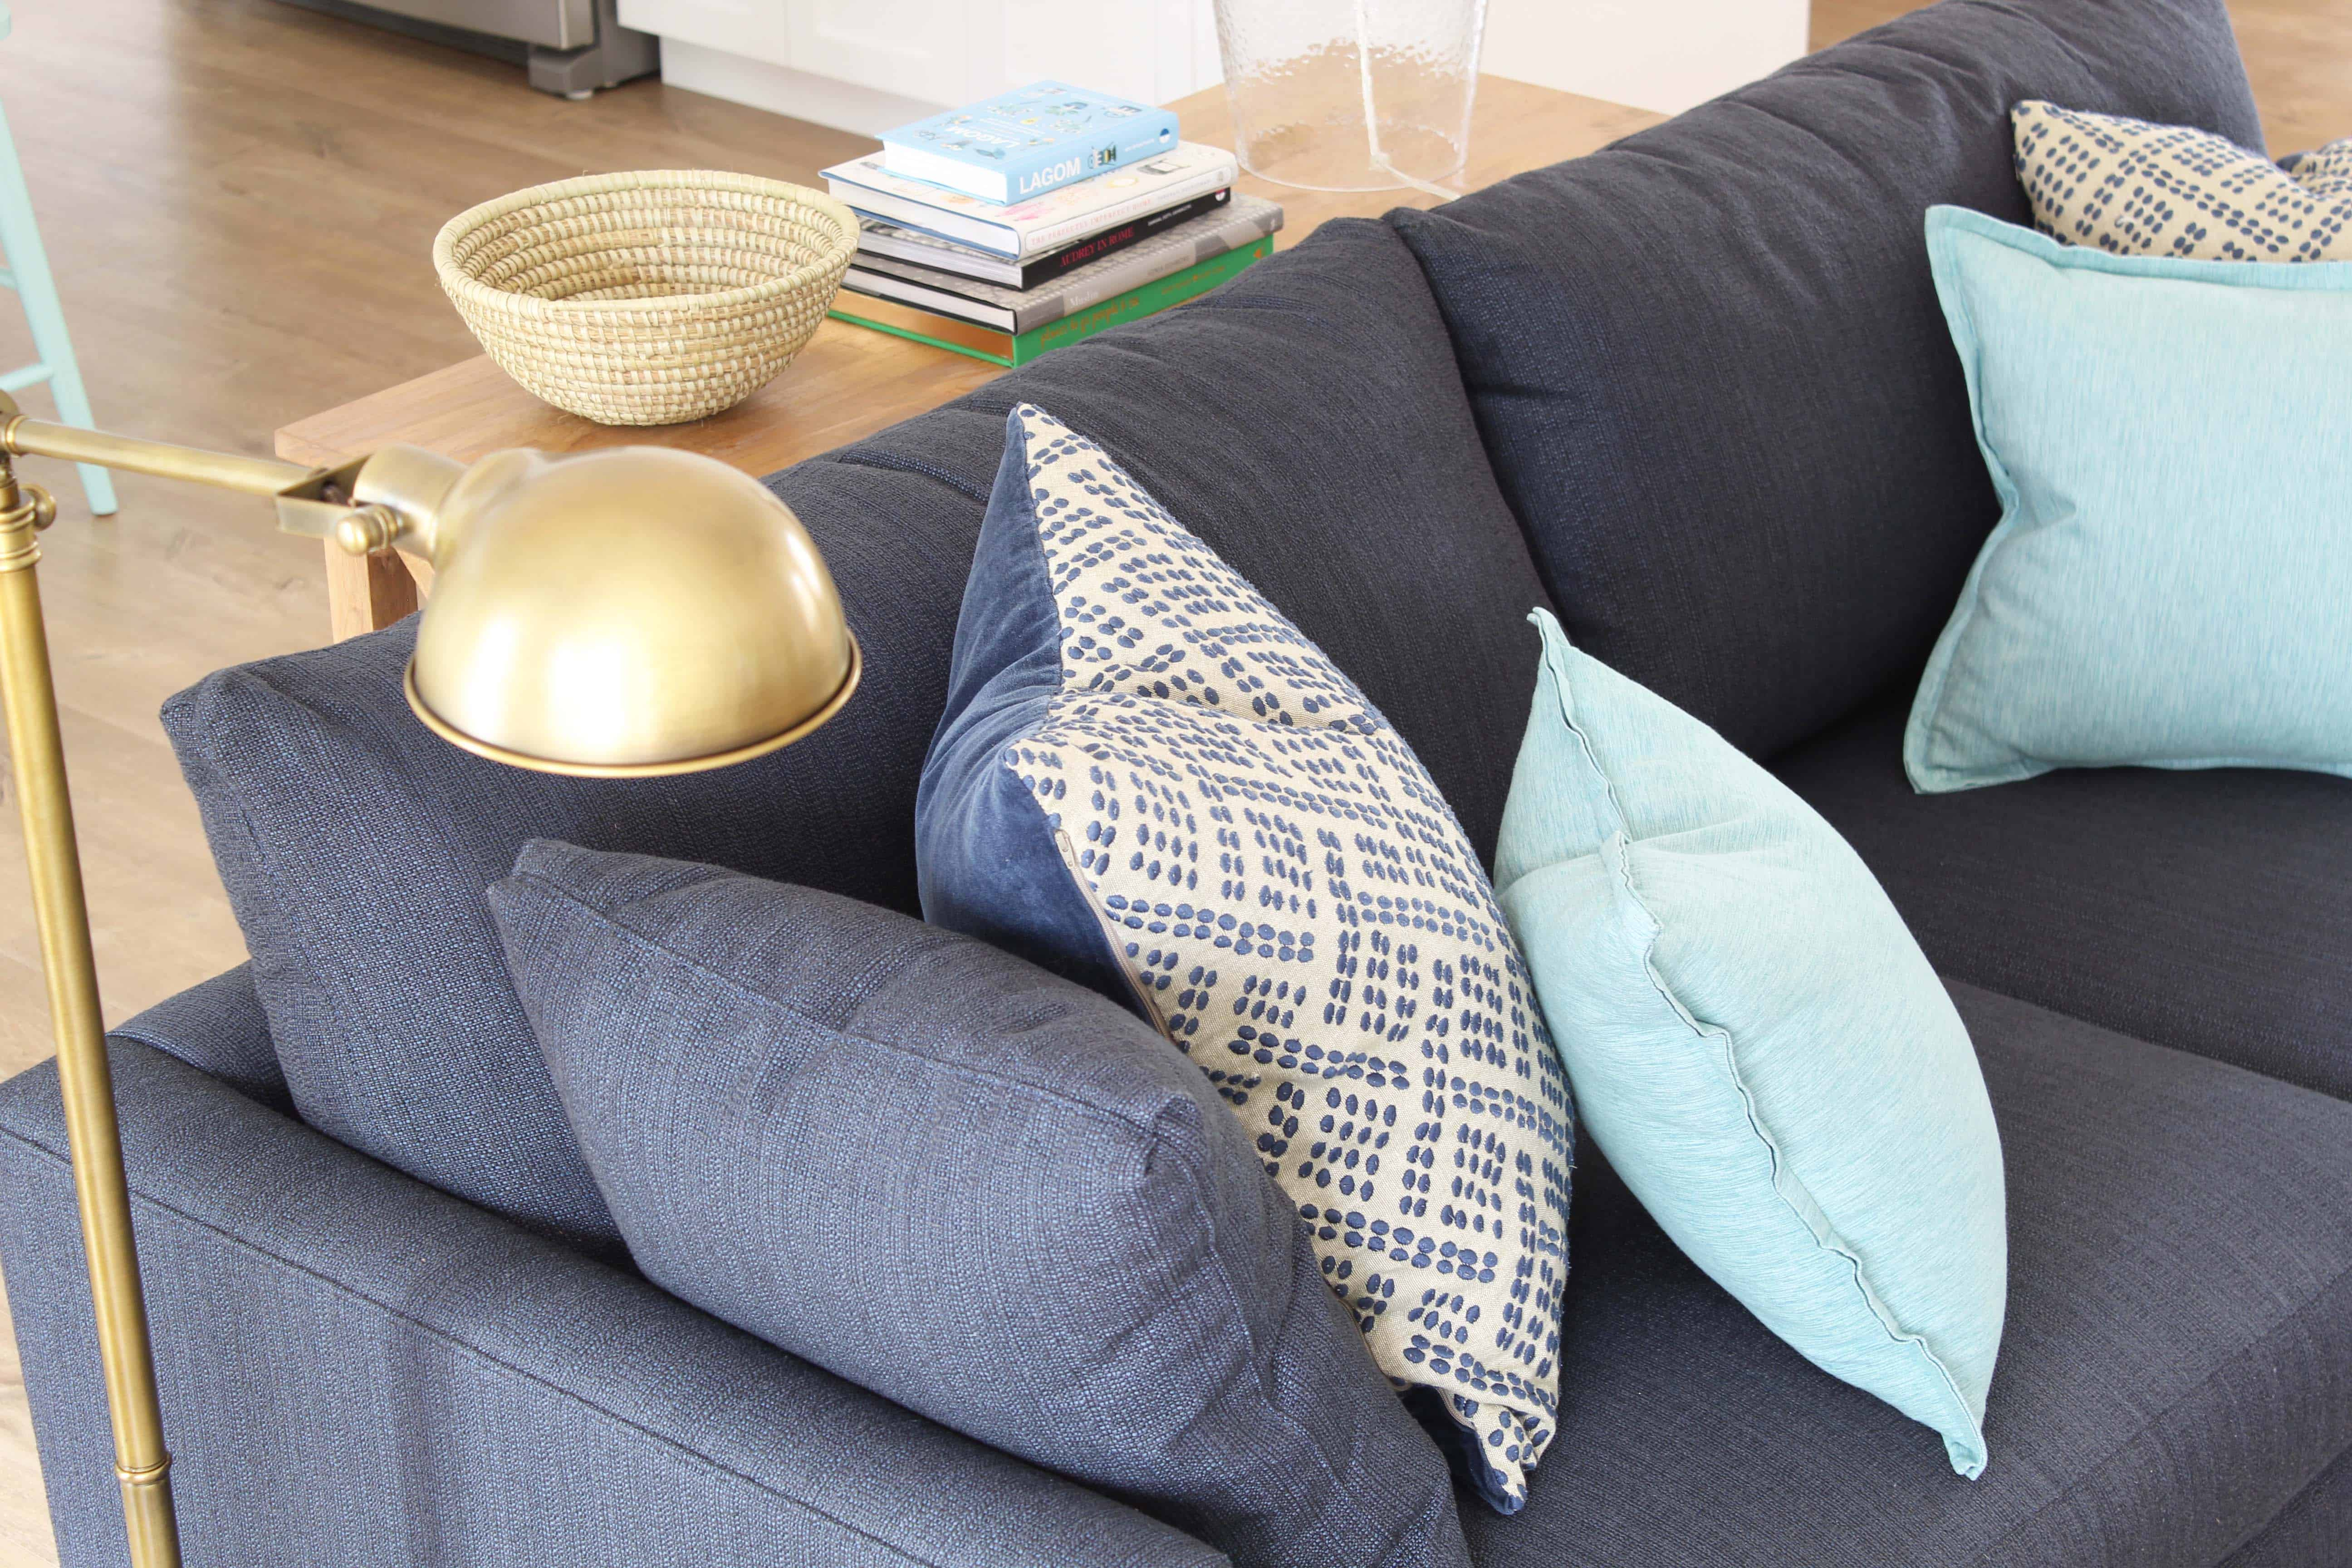 navy blue crate and barrel lounge II petite sofa, brass apothecary lamp, aqua throw pillows, and african woven basket